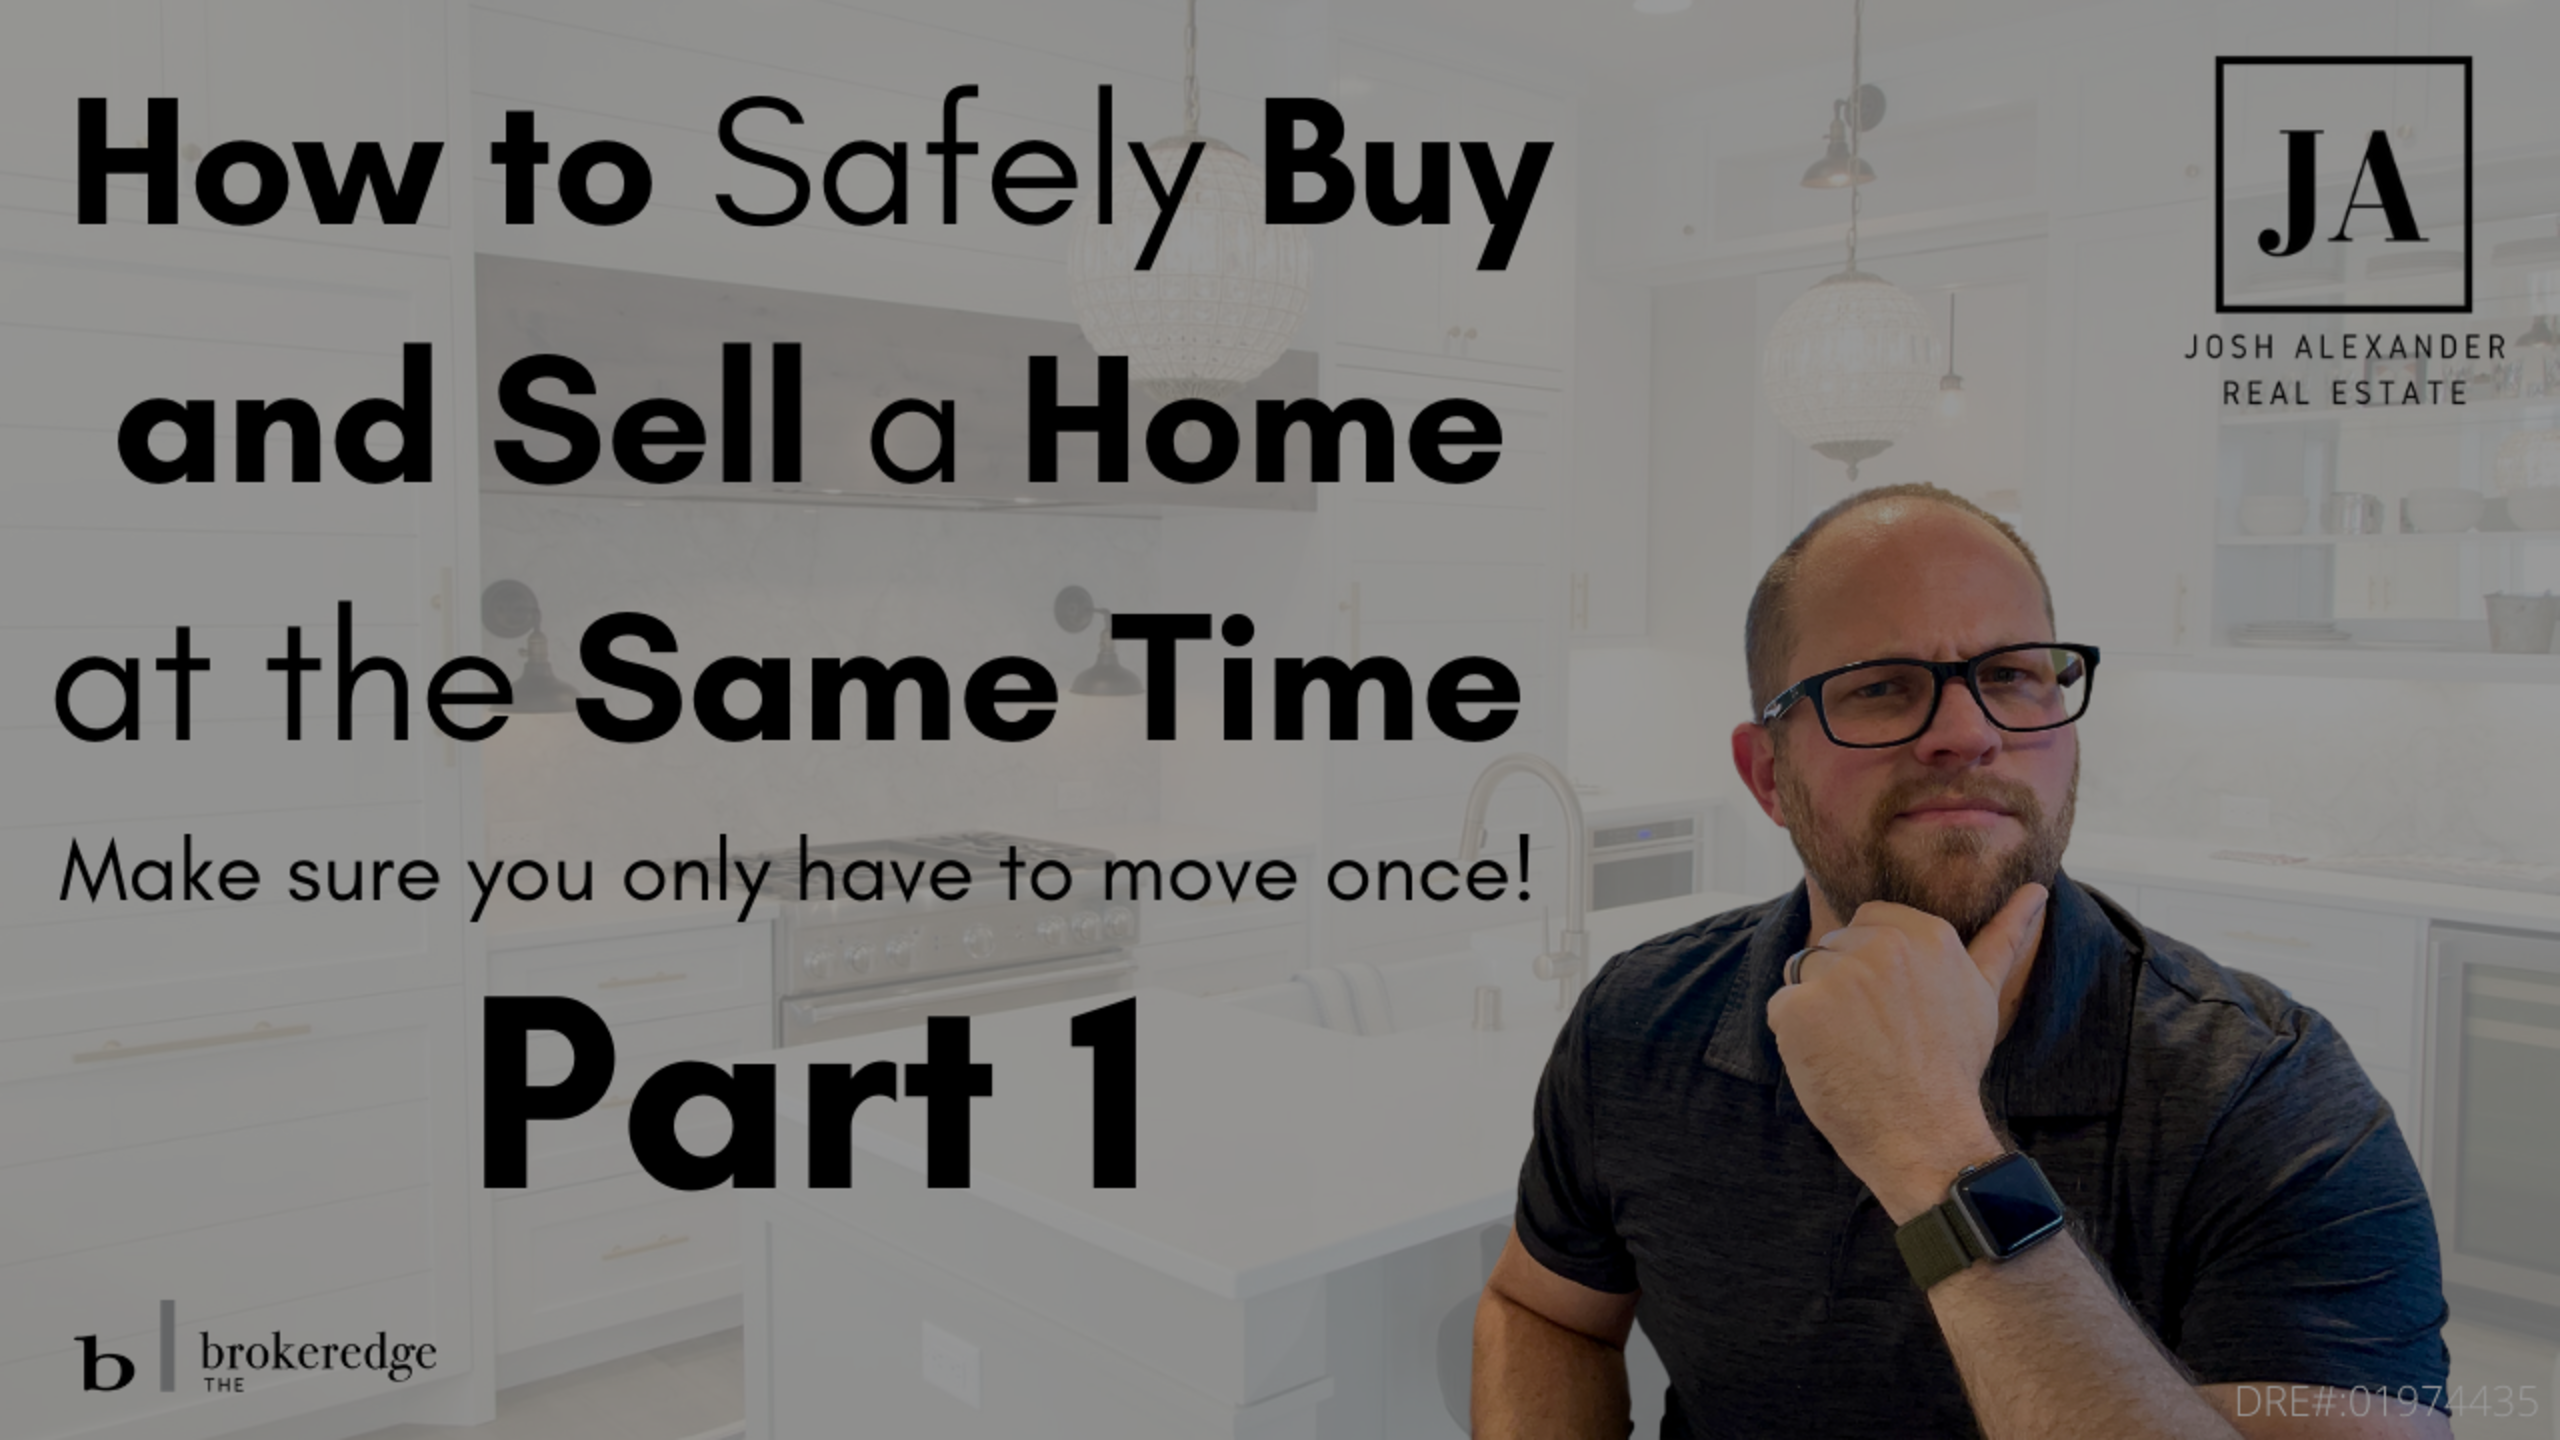 How to Safely Buy and Sell a Home at the Same Time